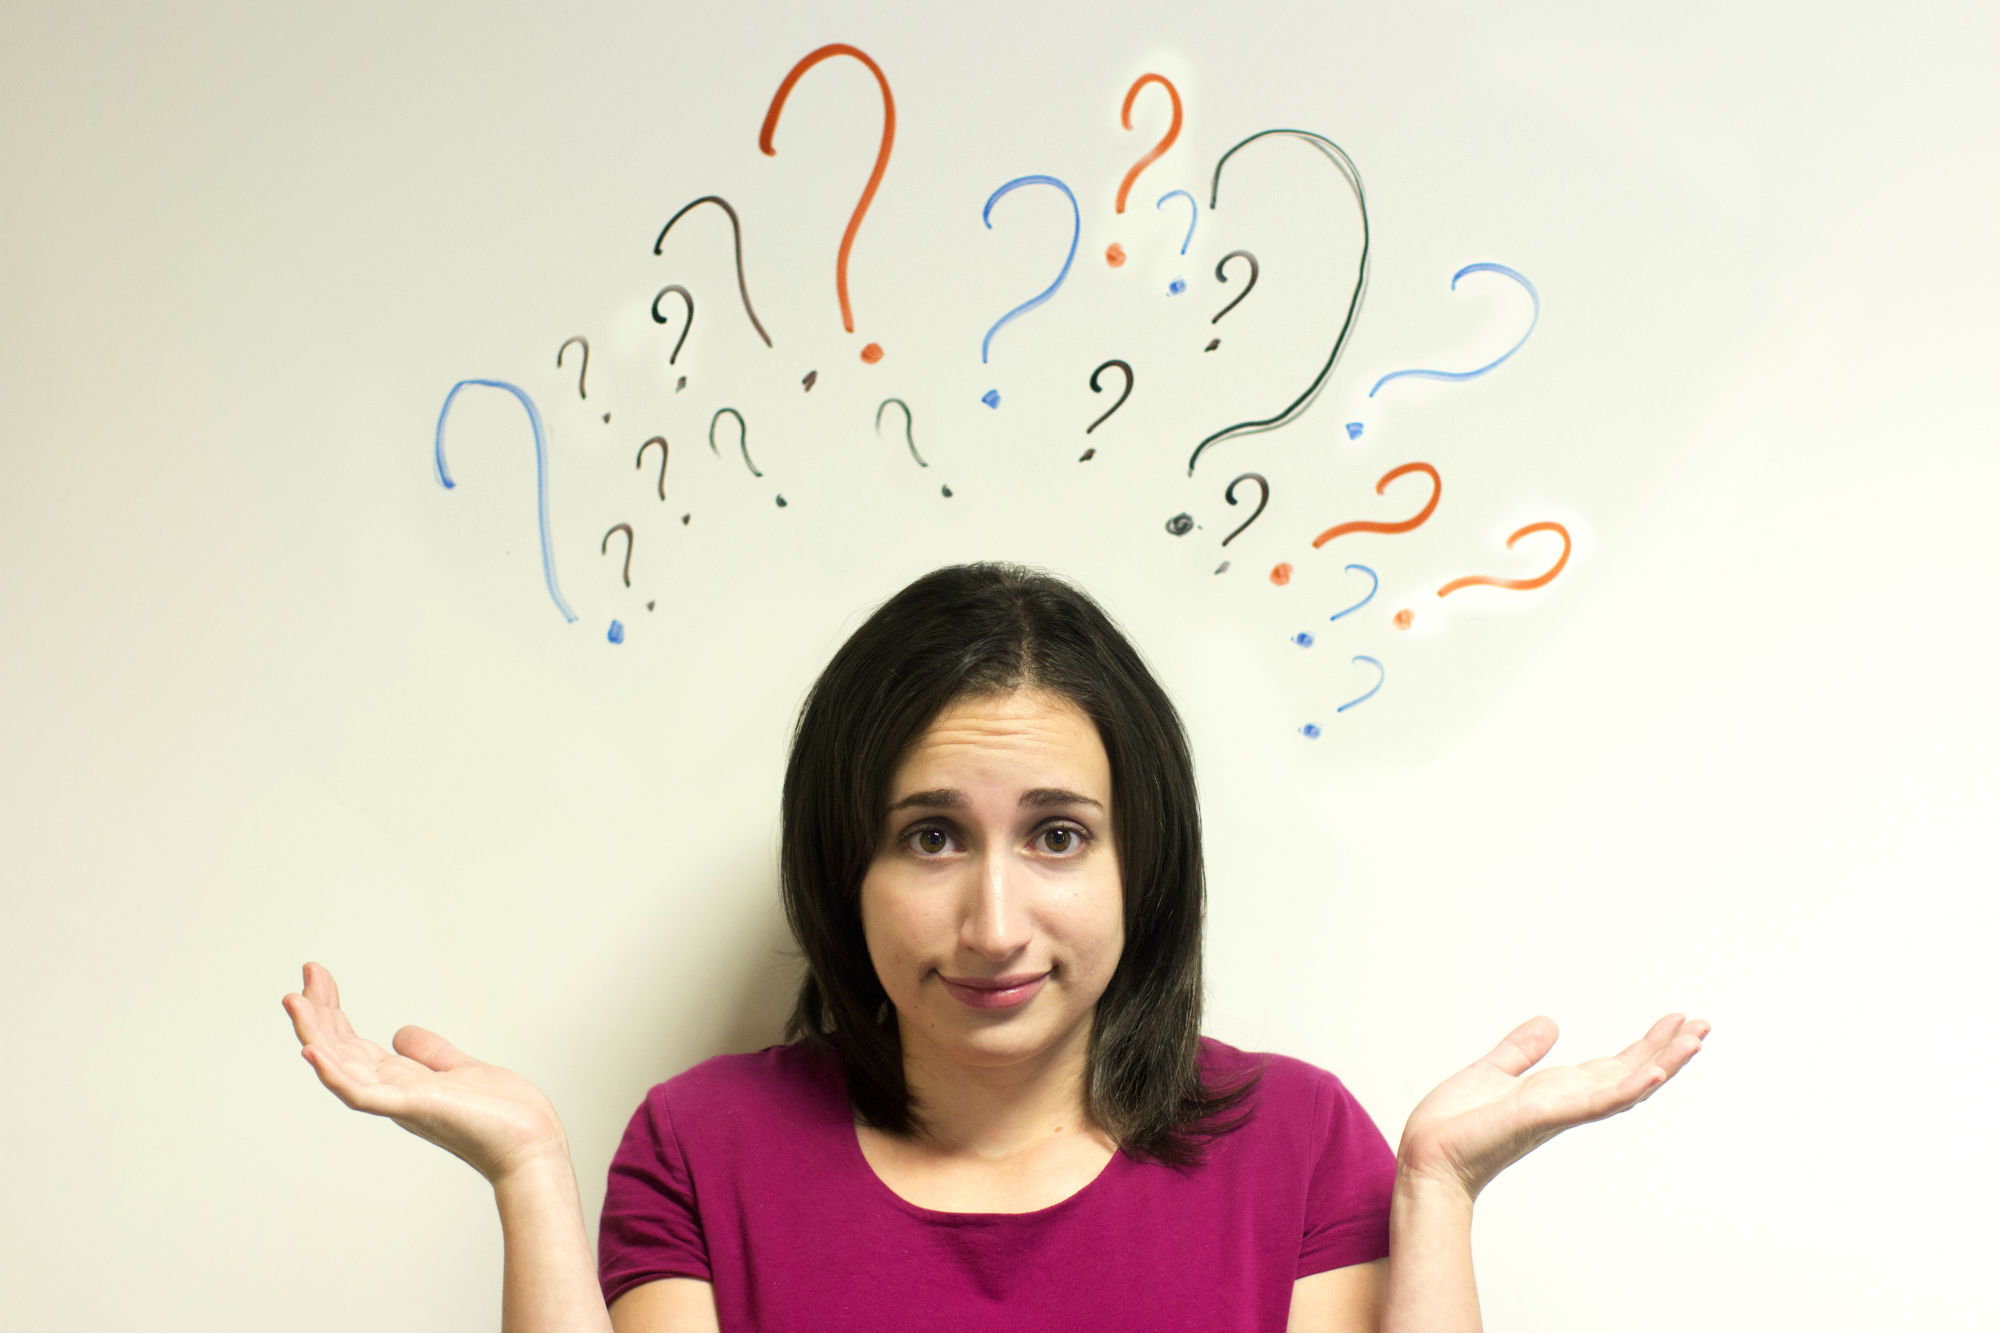 4 Employer Questions Gen Y Want to Ask Recruiters (But Don't)